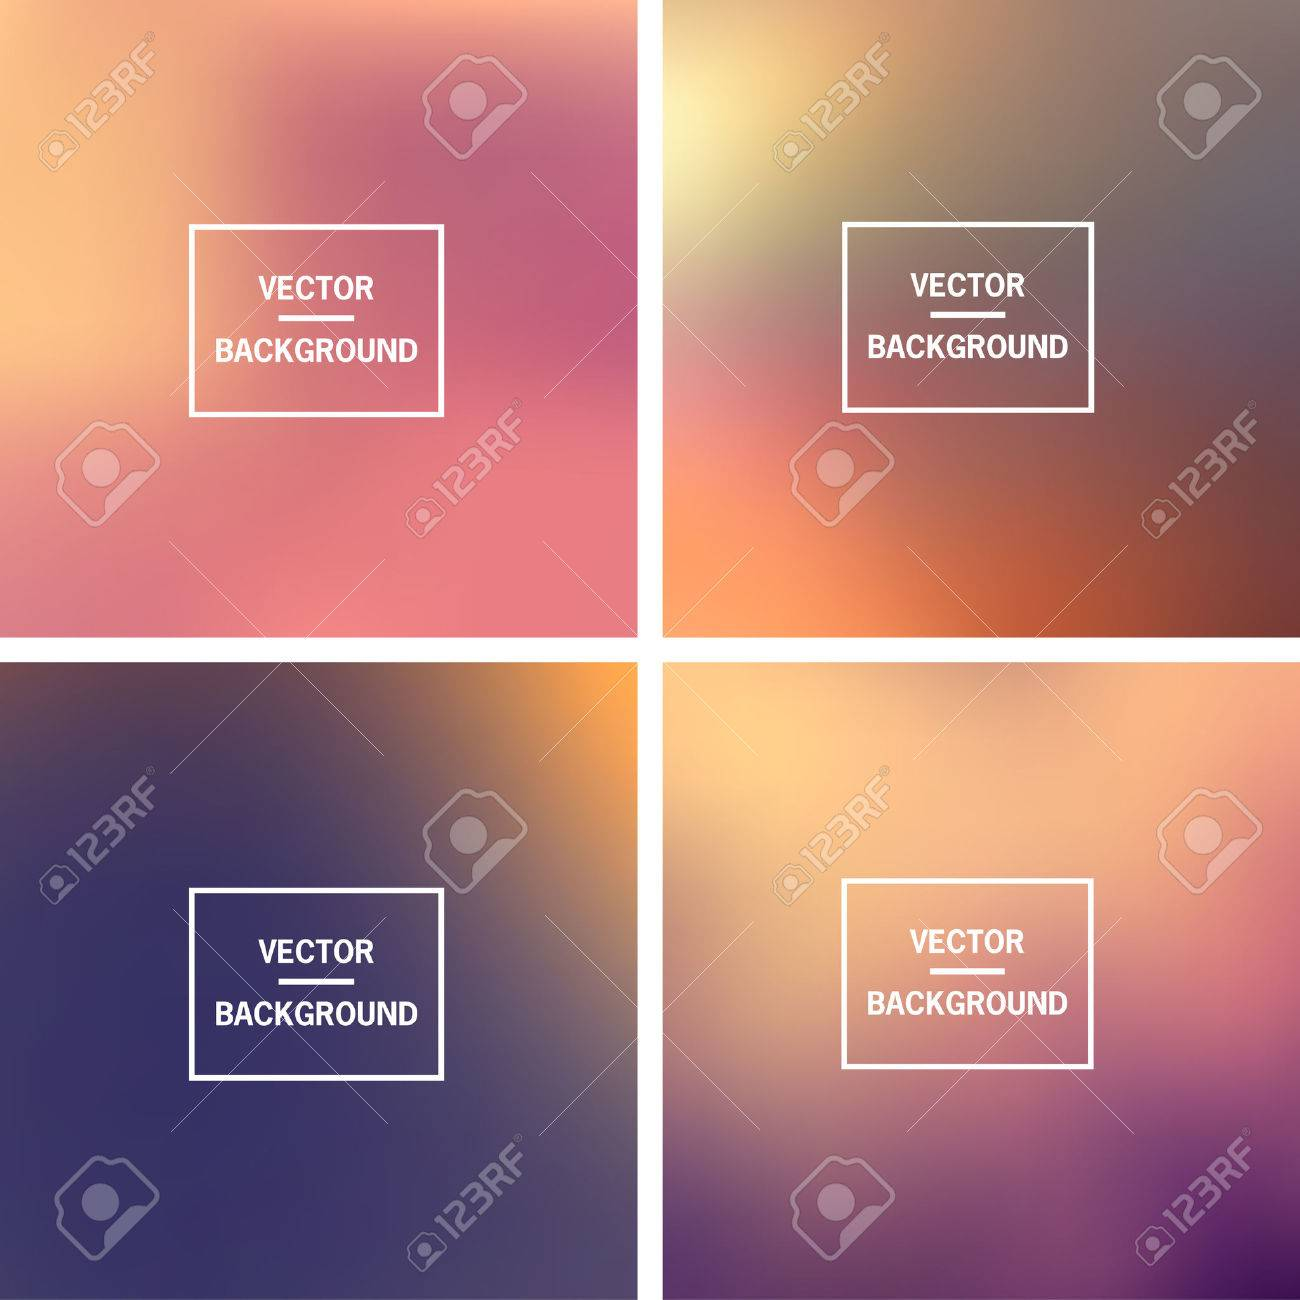 Abstract colorful blurred vector backgrounds. Elements for your website or presentation. - 46960909